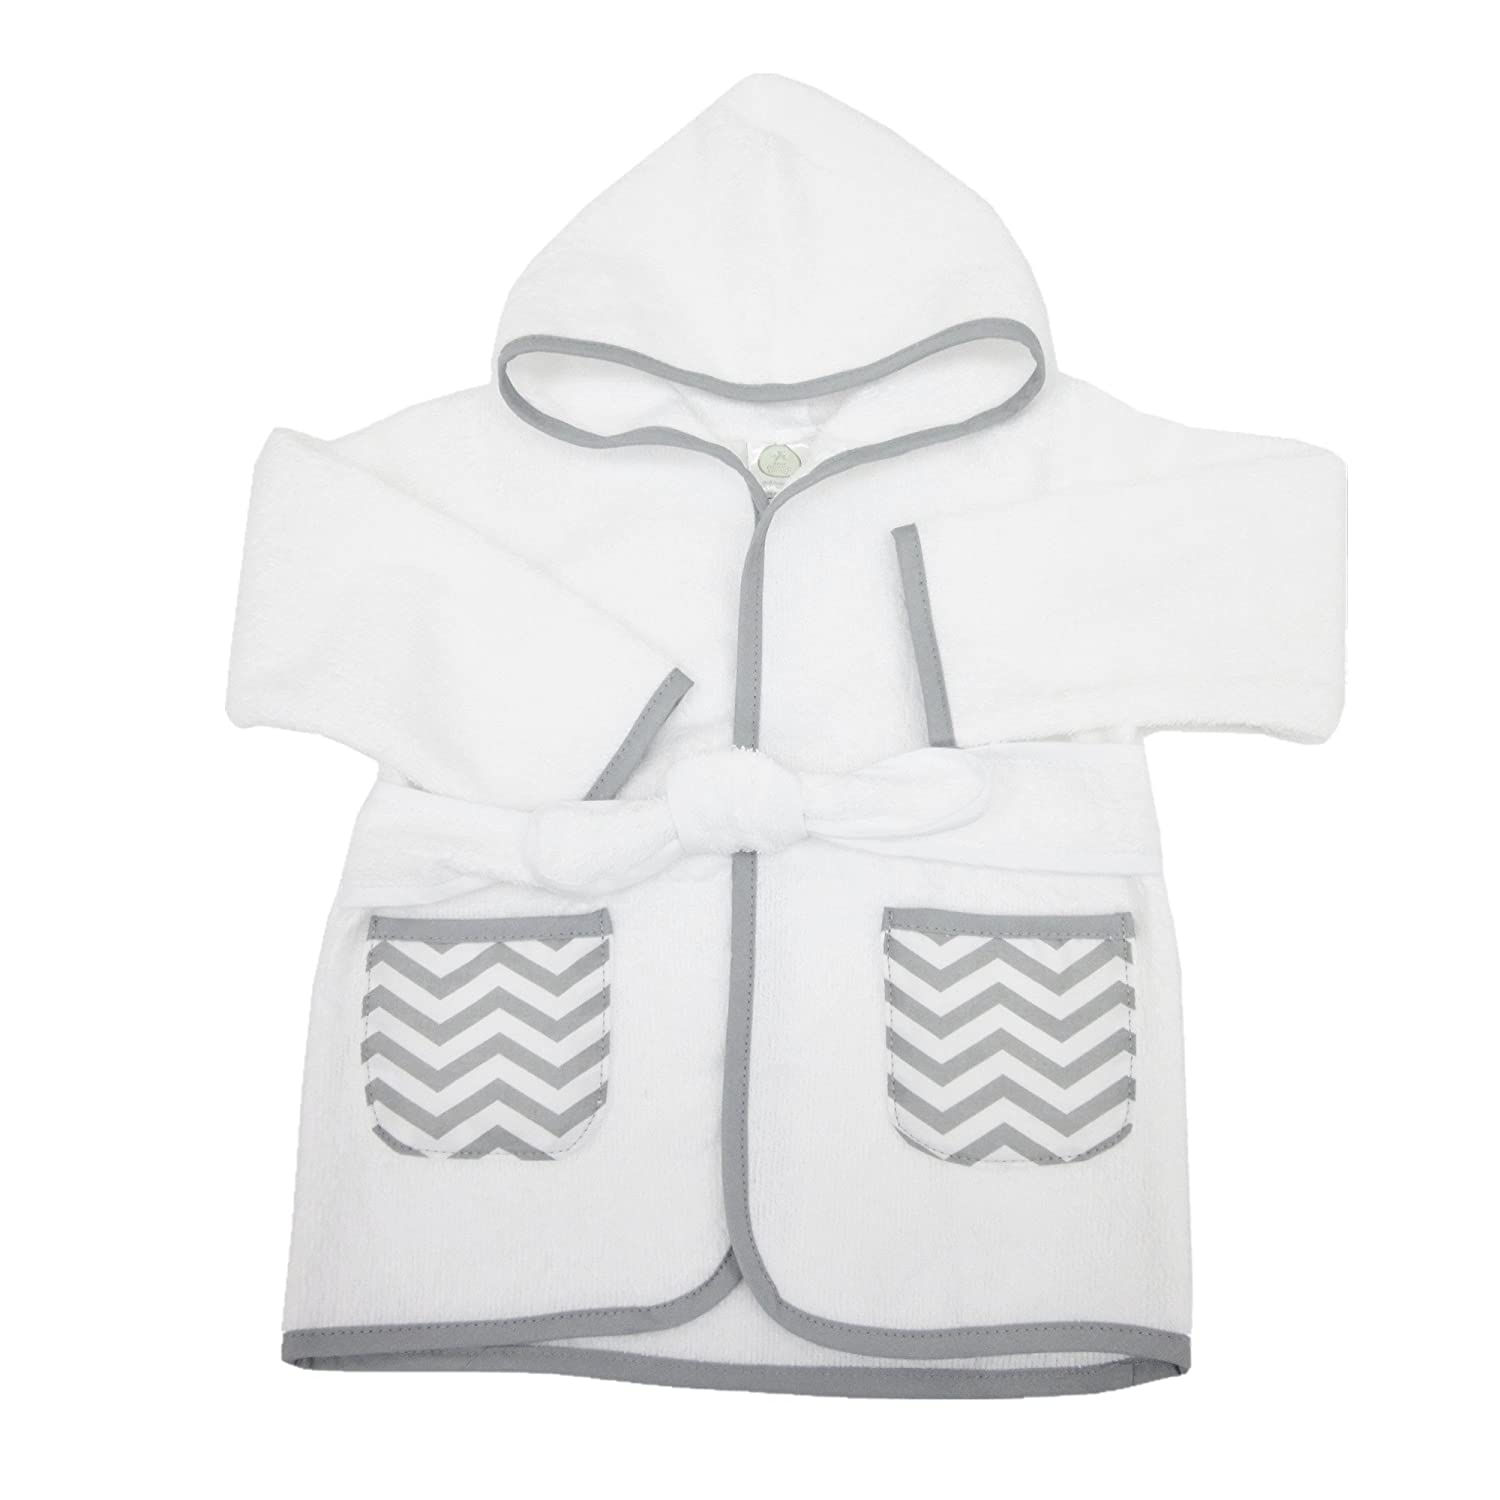 American Baby Company Baby Bathrobe Made with Organic Cotton, White/Gray, 0-9 Months 83200WT-GR